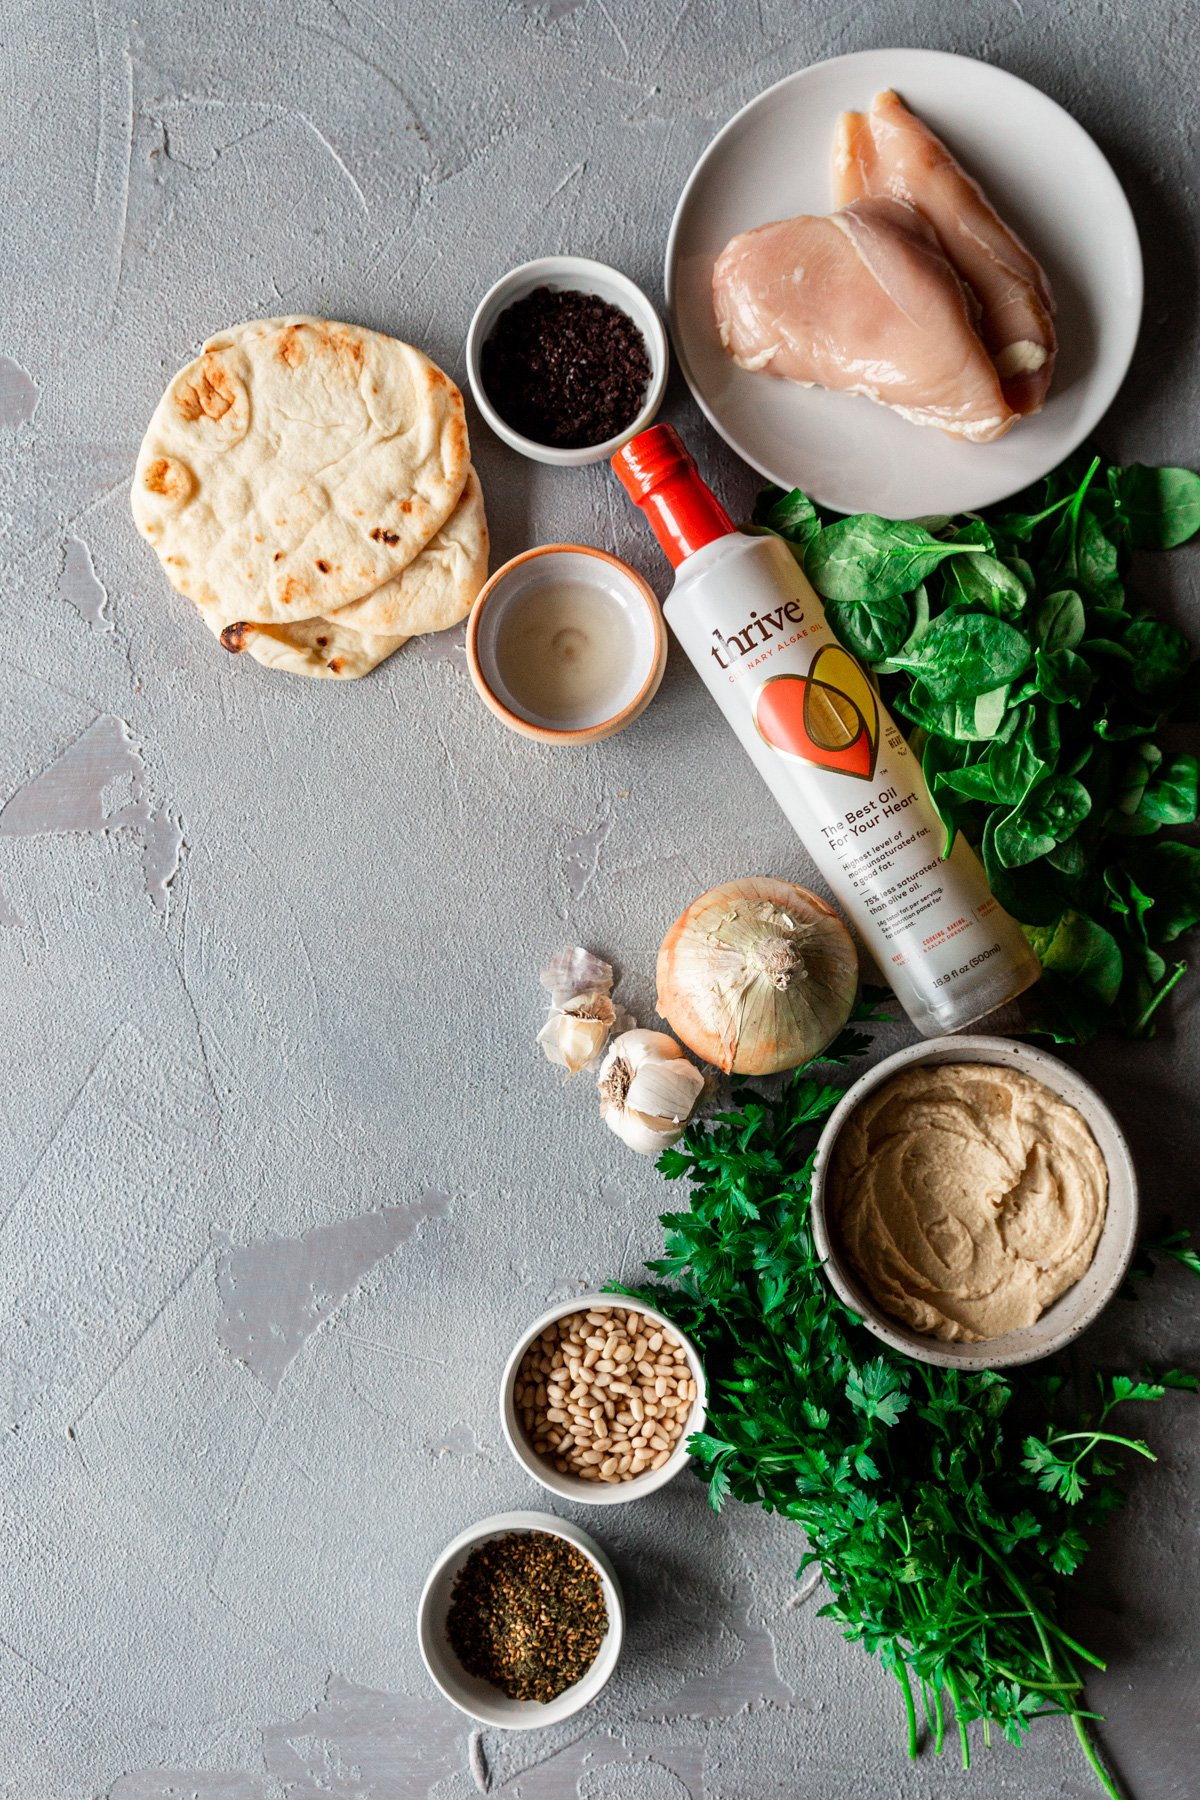 ingredients for grilled chicken flatbread with za'atar hummus, sumac caramelized onions, and spinach salad